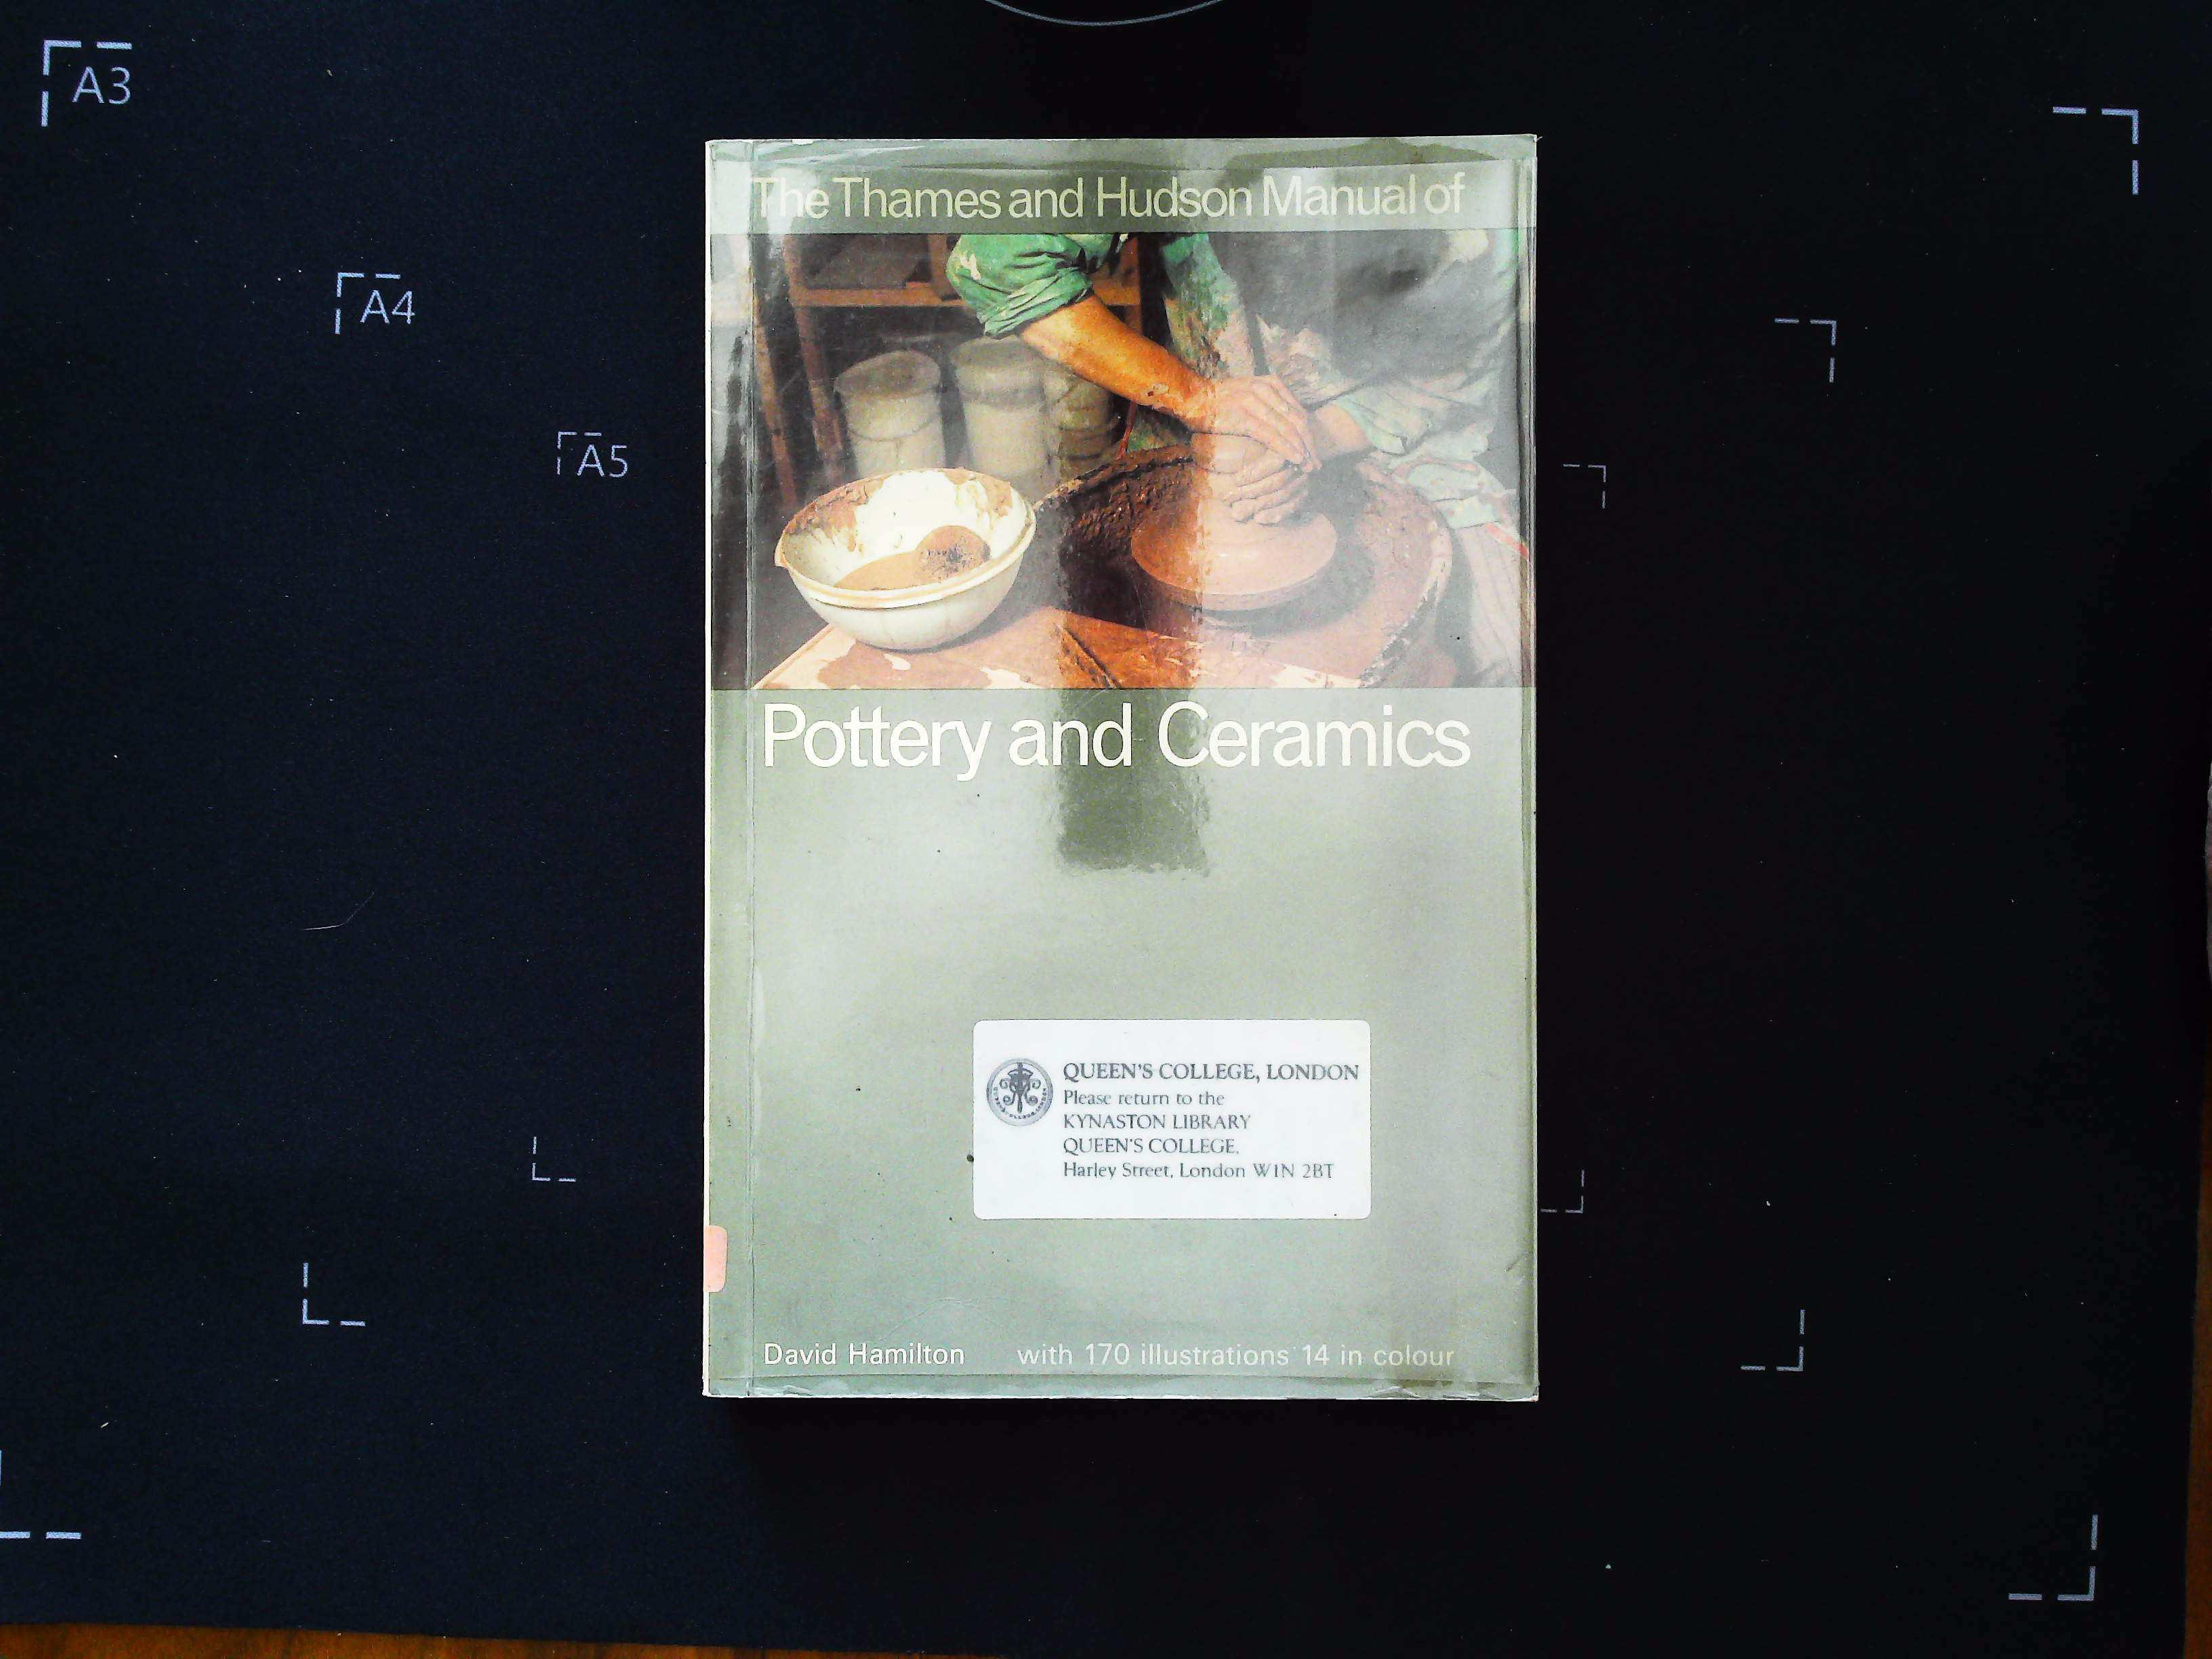 The Thames and Hudson Manual of Pottery and Ceramics by David Hamilton softback book 188 pages